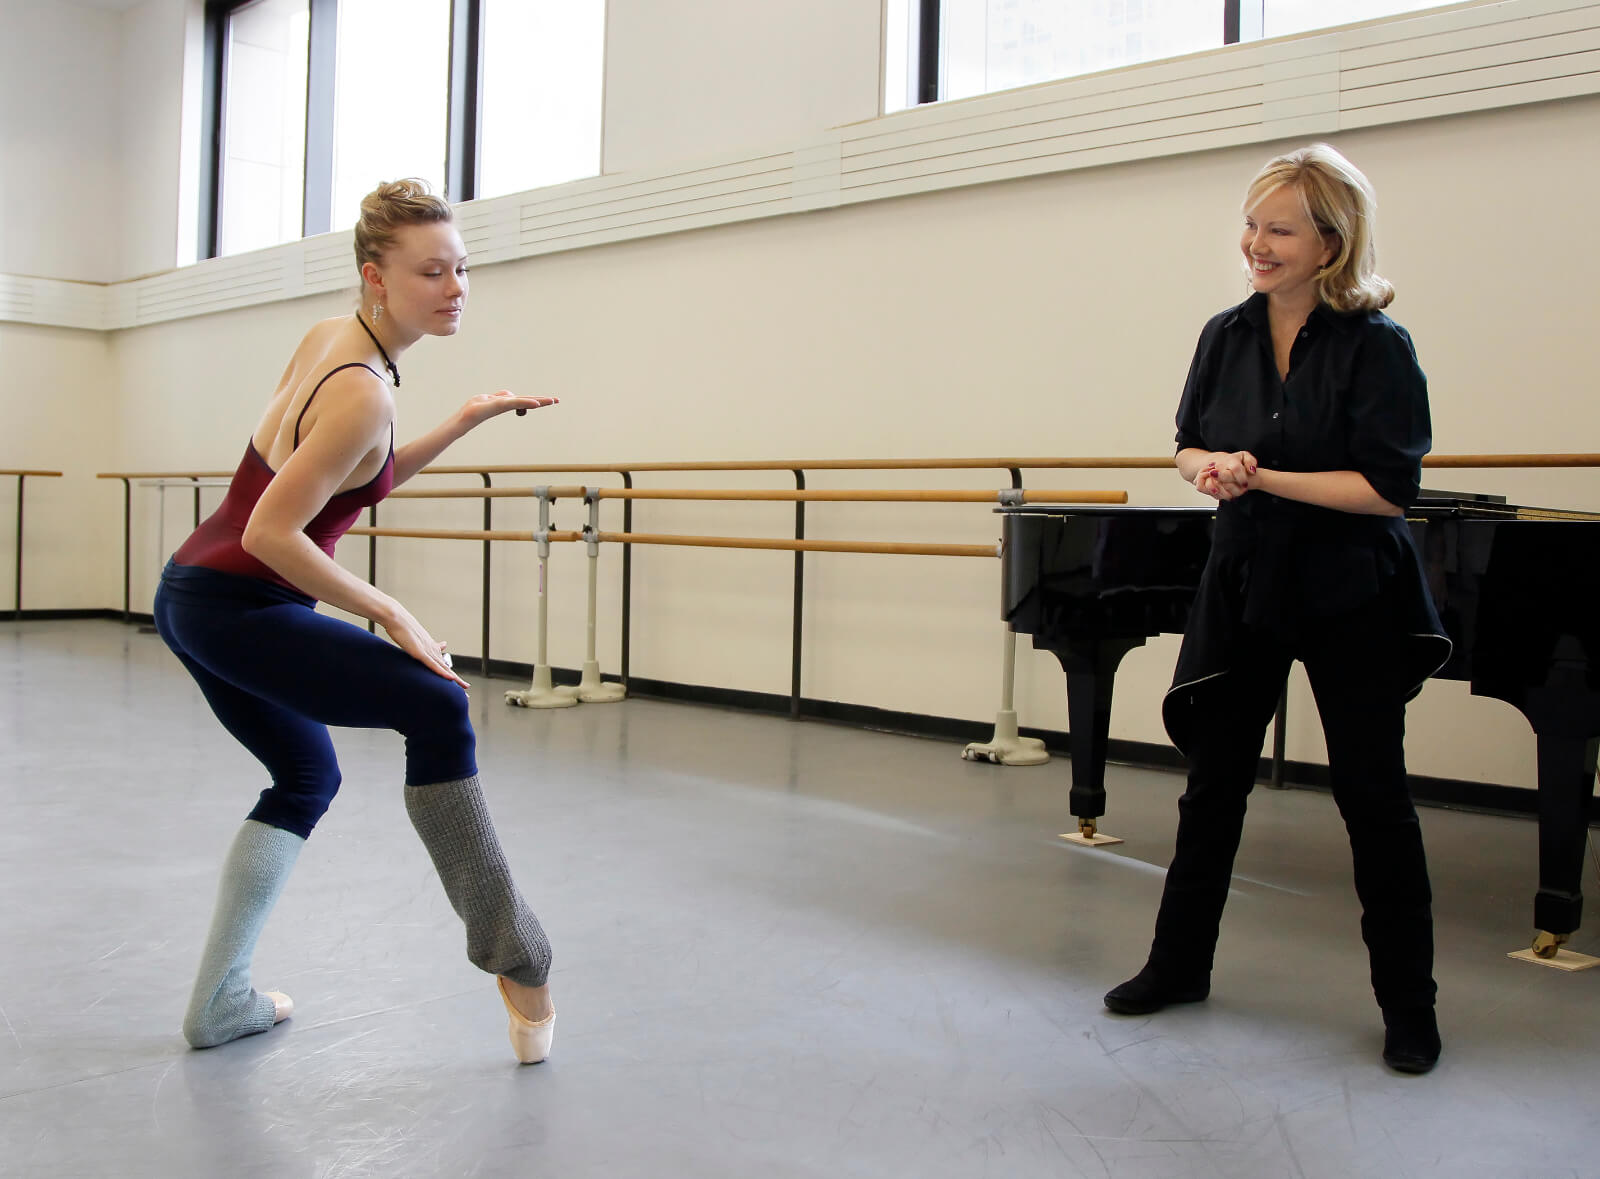 Sara Mearns, slightly kneeling with one pointed foot, in a rehearsal studio with Susan Stroman, standing with clasped hands by a piano.